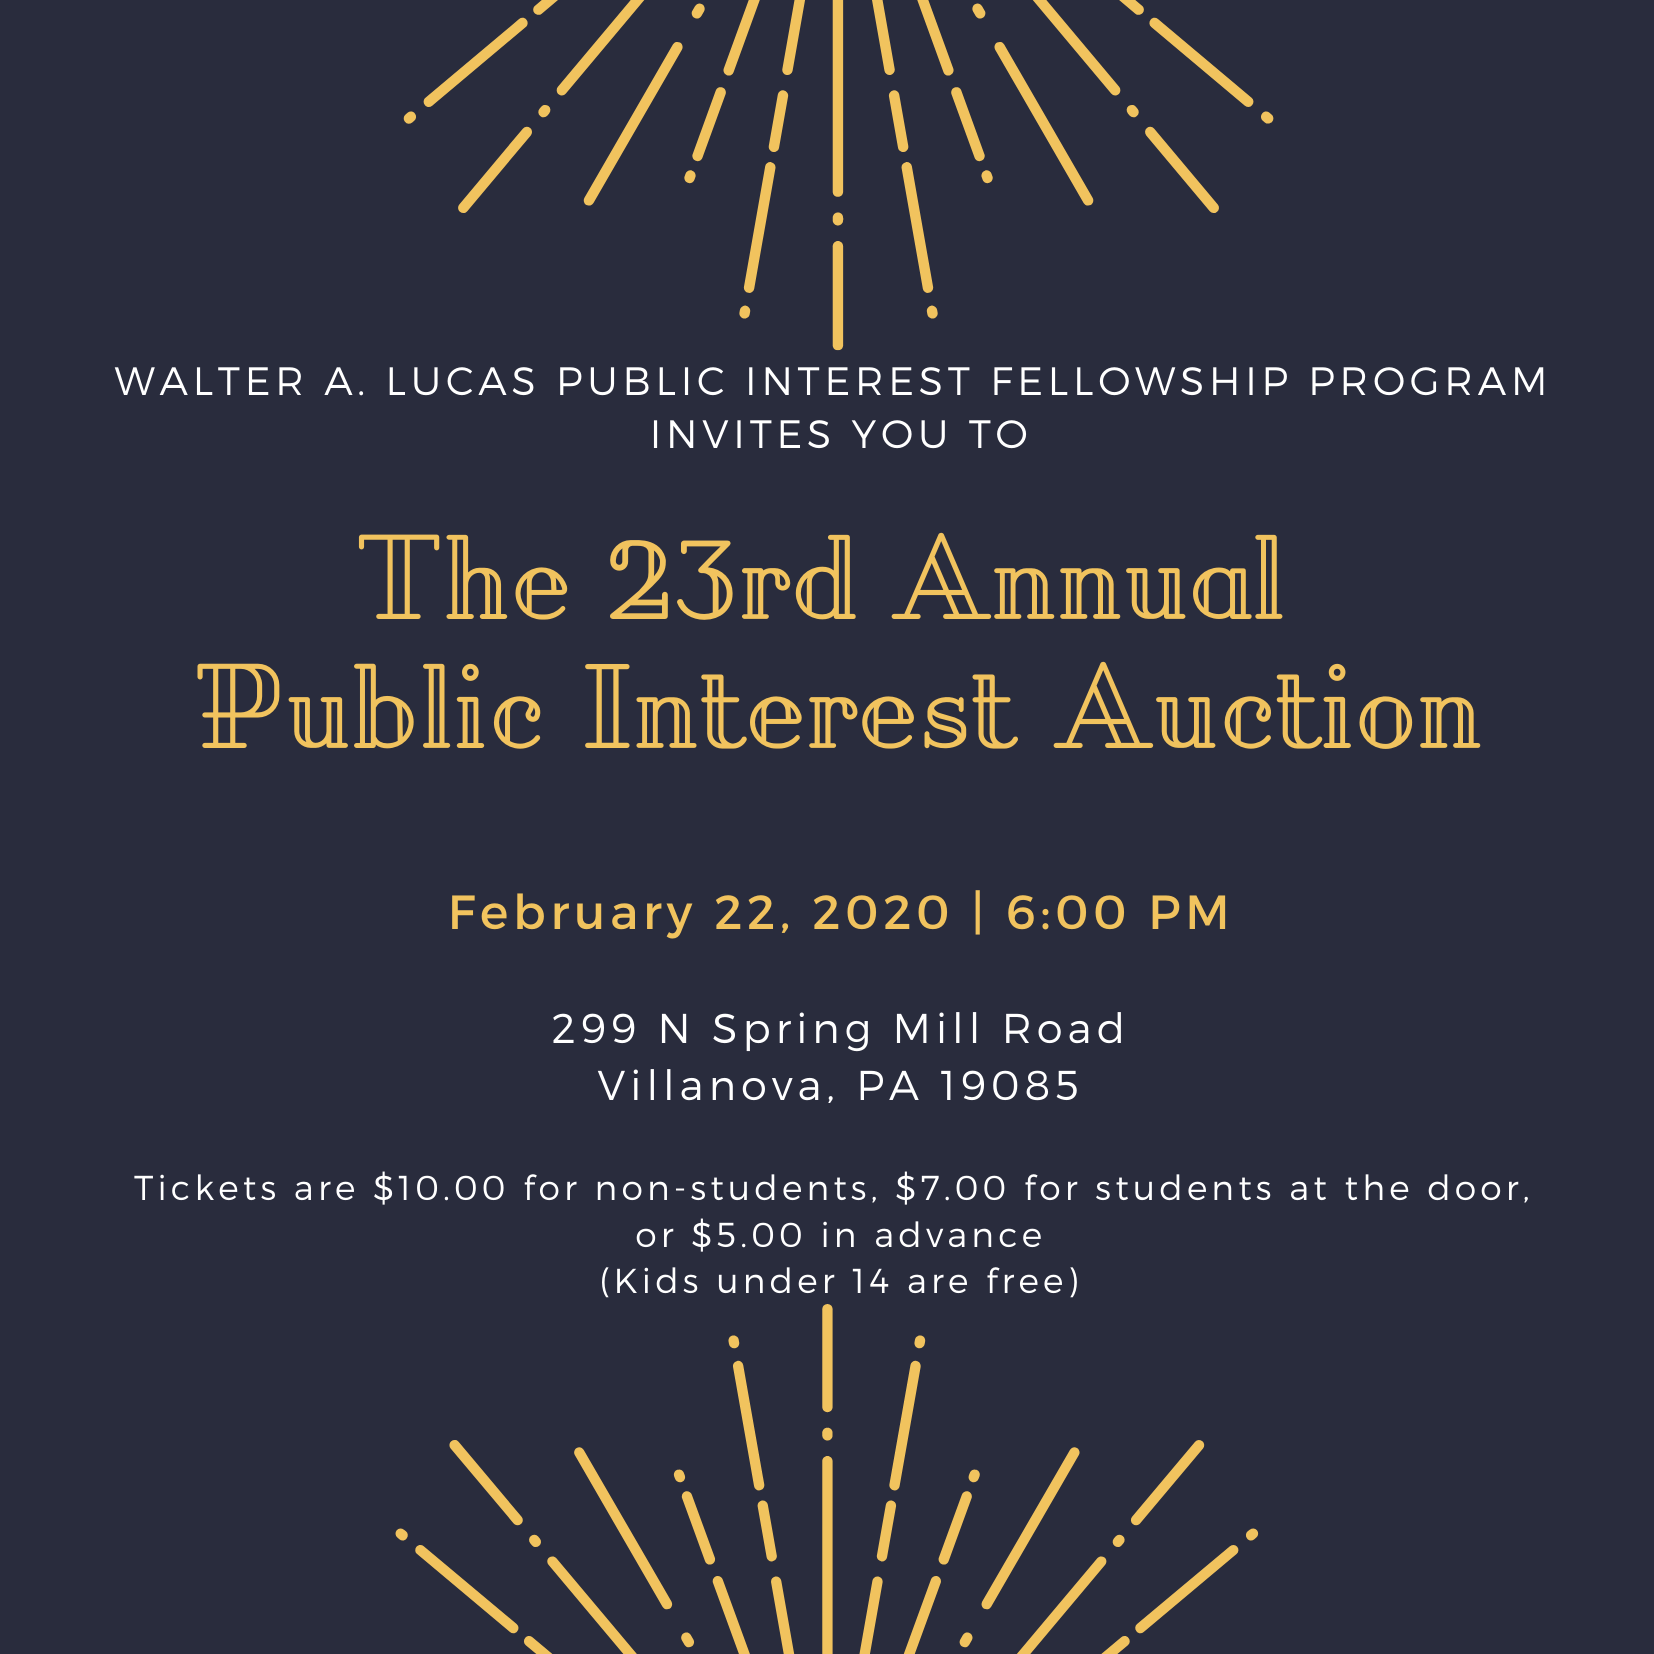 23rd Annual Public Interest Fellowship Auction Flyer Feb 20 2020 6 PM $10 for nonstudents $7 for students at door $5 in advance Under 14 free